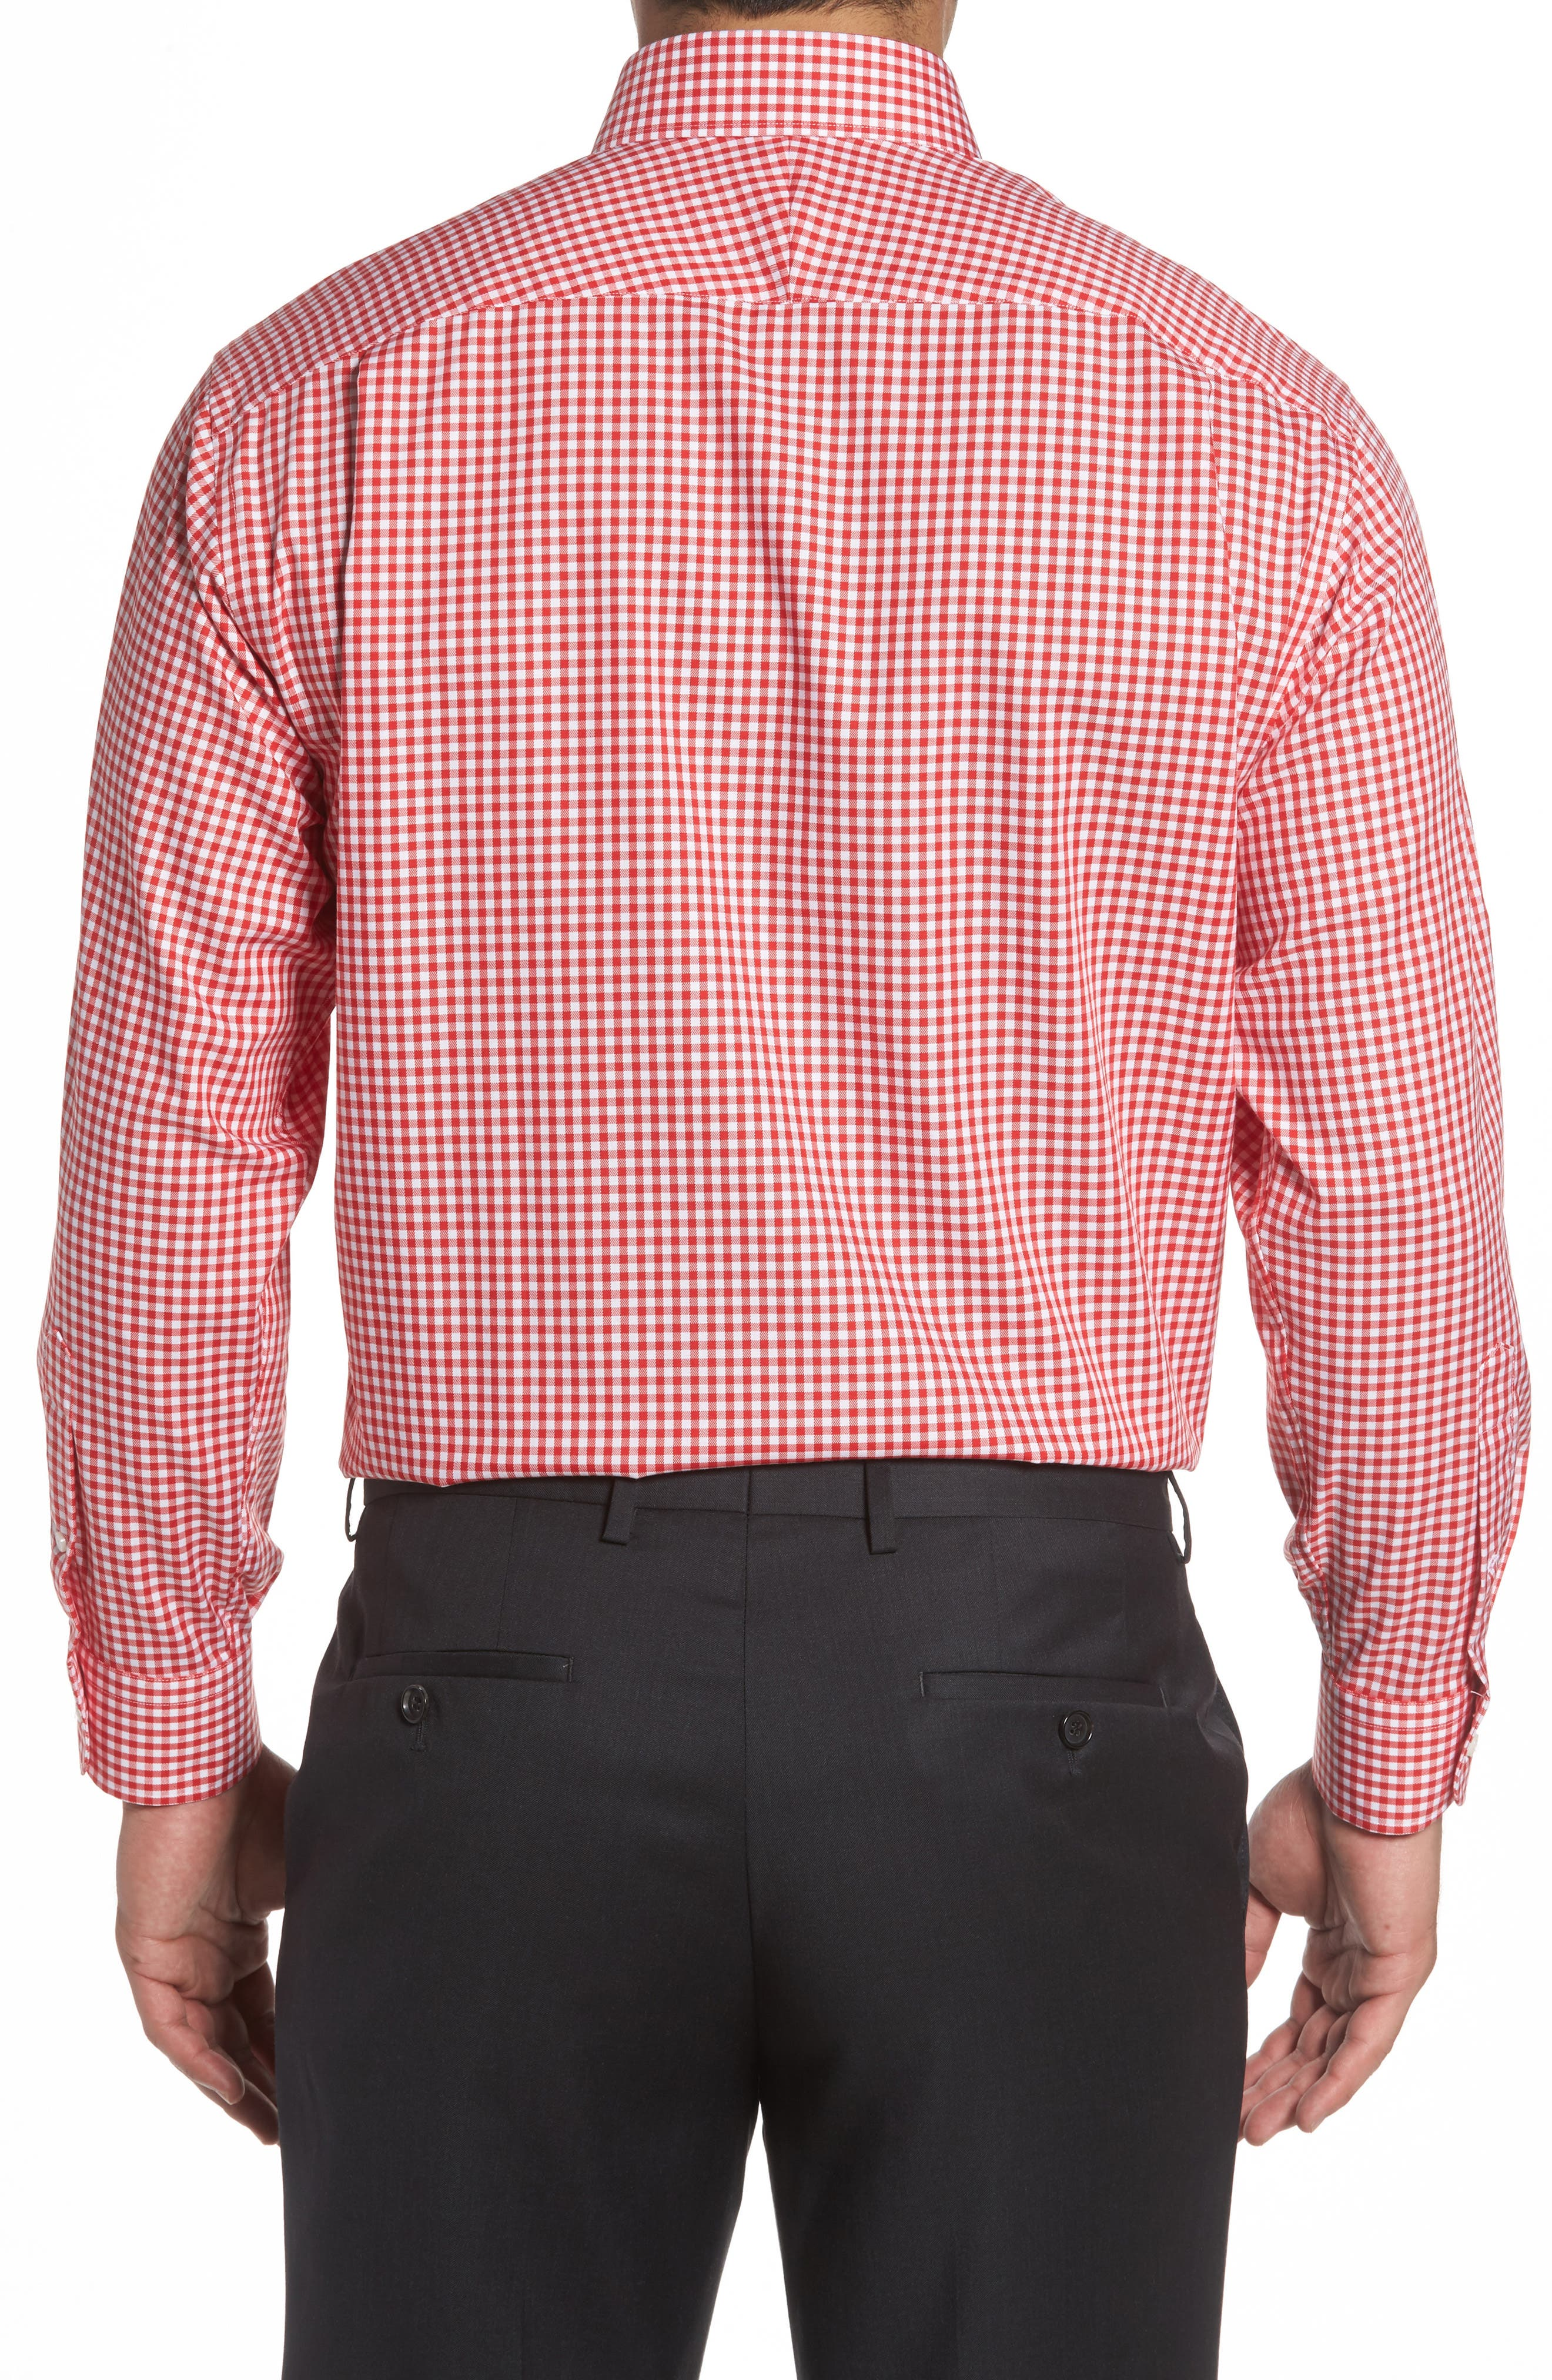 Alternate Image 3  - Nordstrom Men's Shop Classic Fit Non-Iron Gingham Dress Shirt (Online Only)